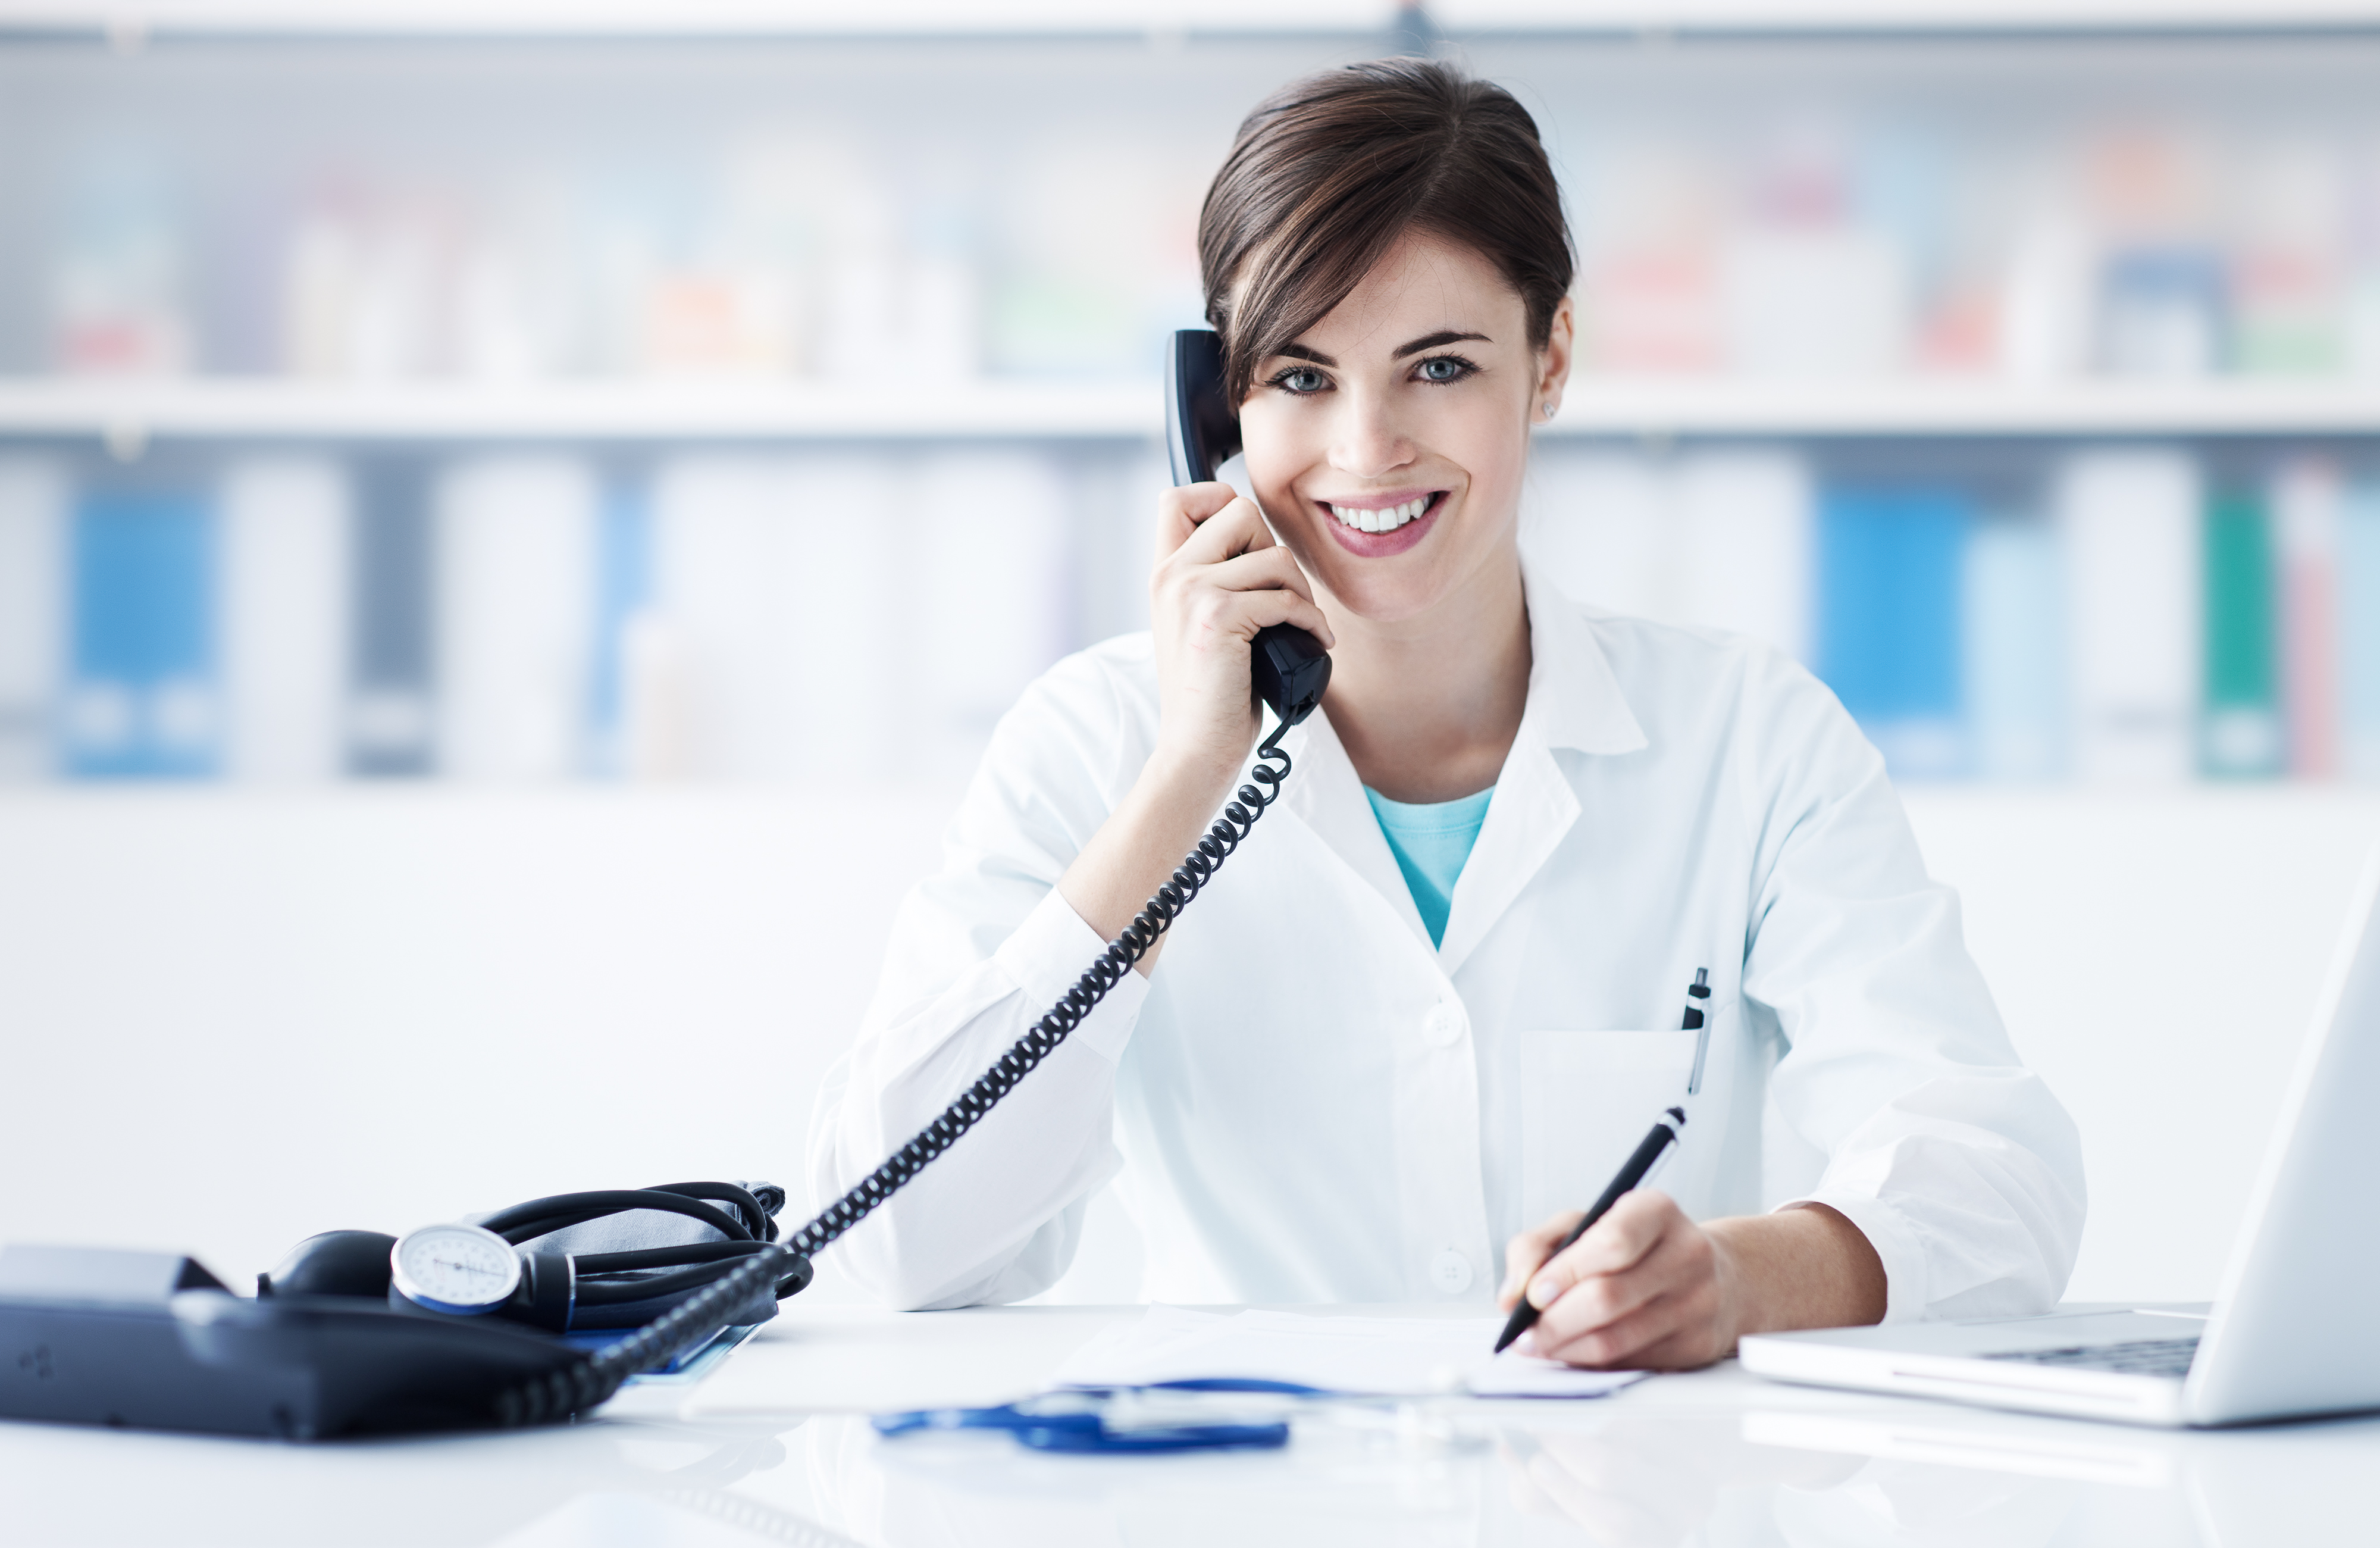 Entry Level Medical Transcriptionist Jobs With Free Training